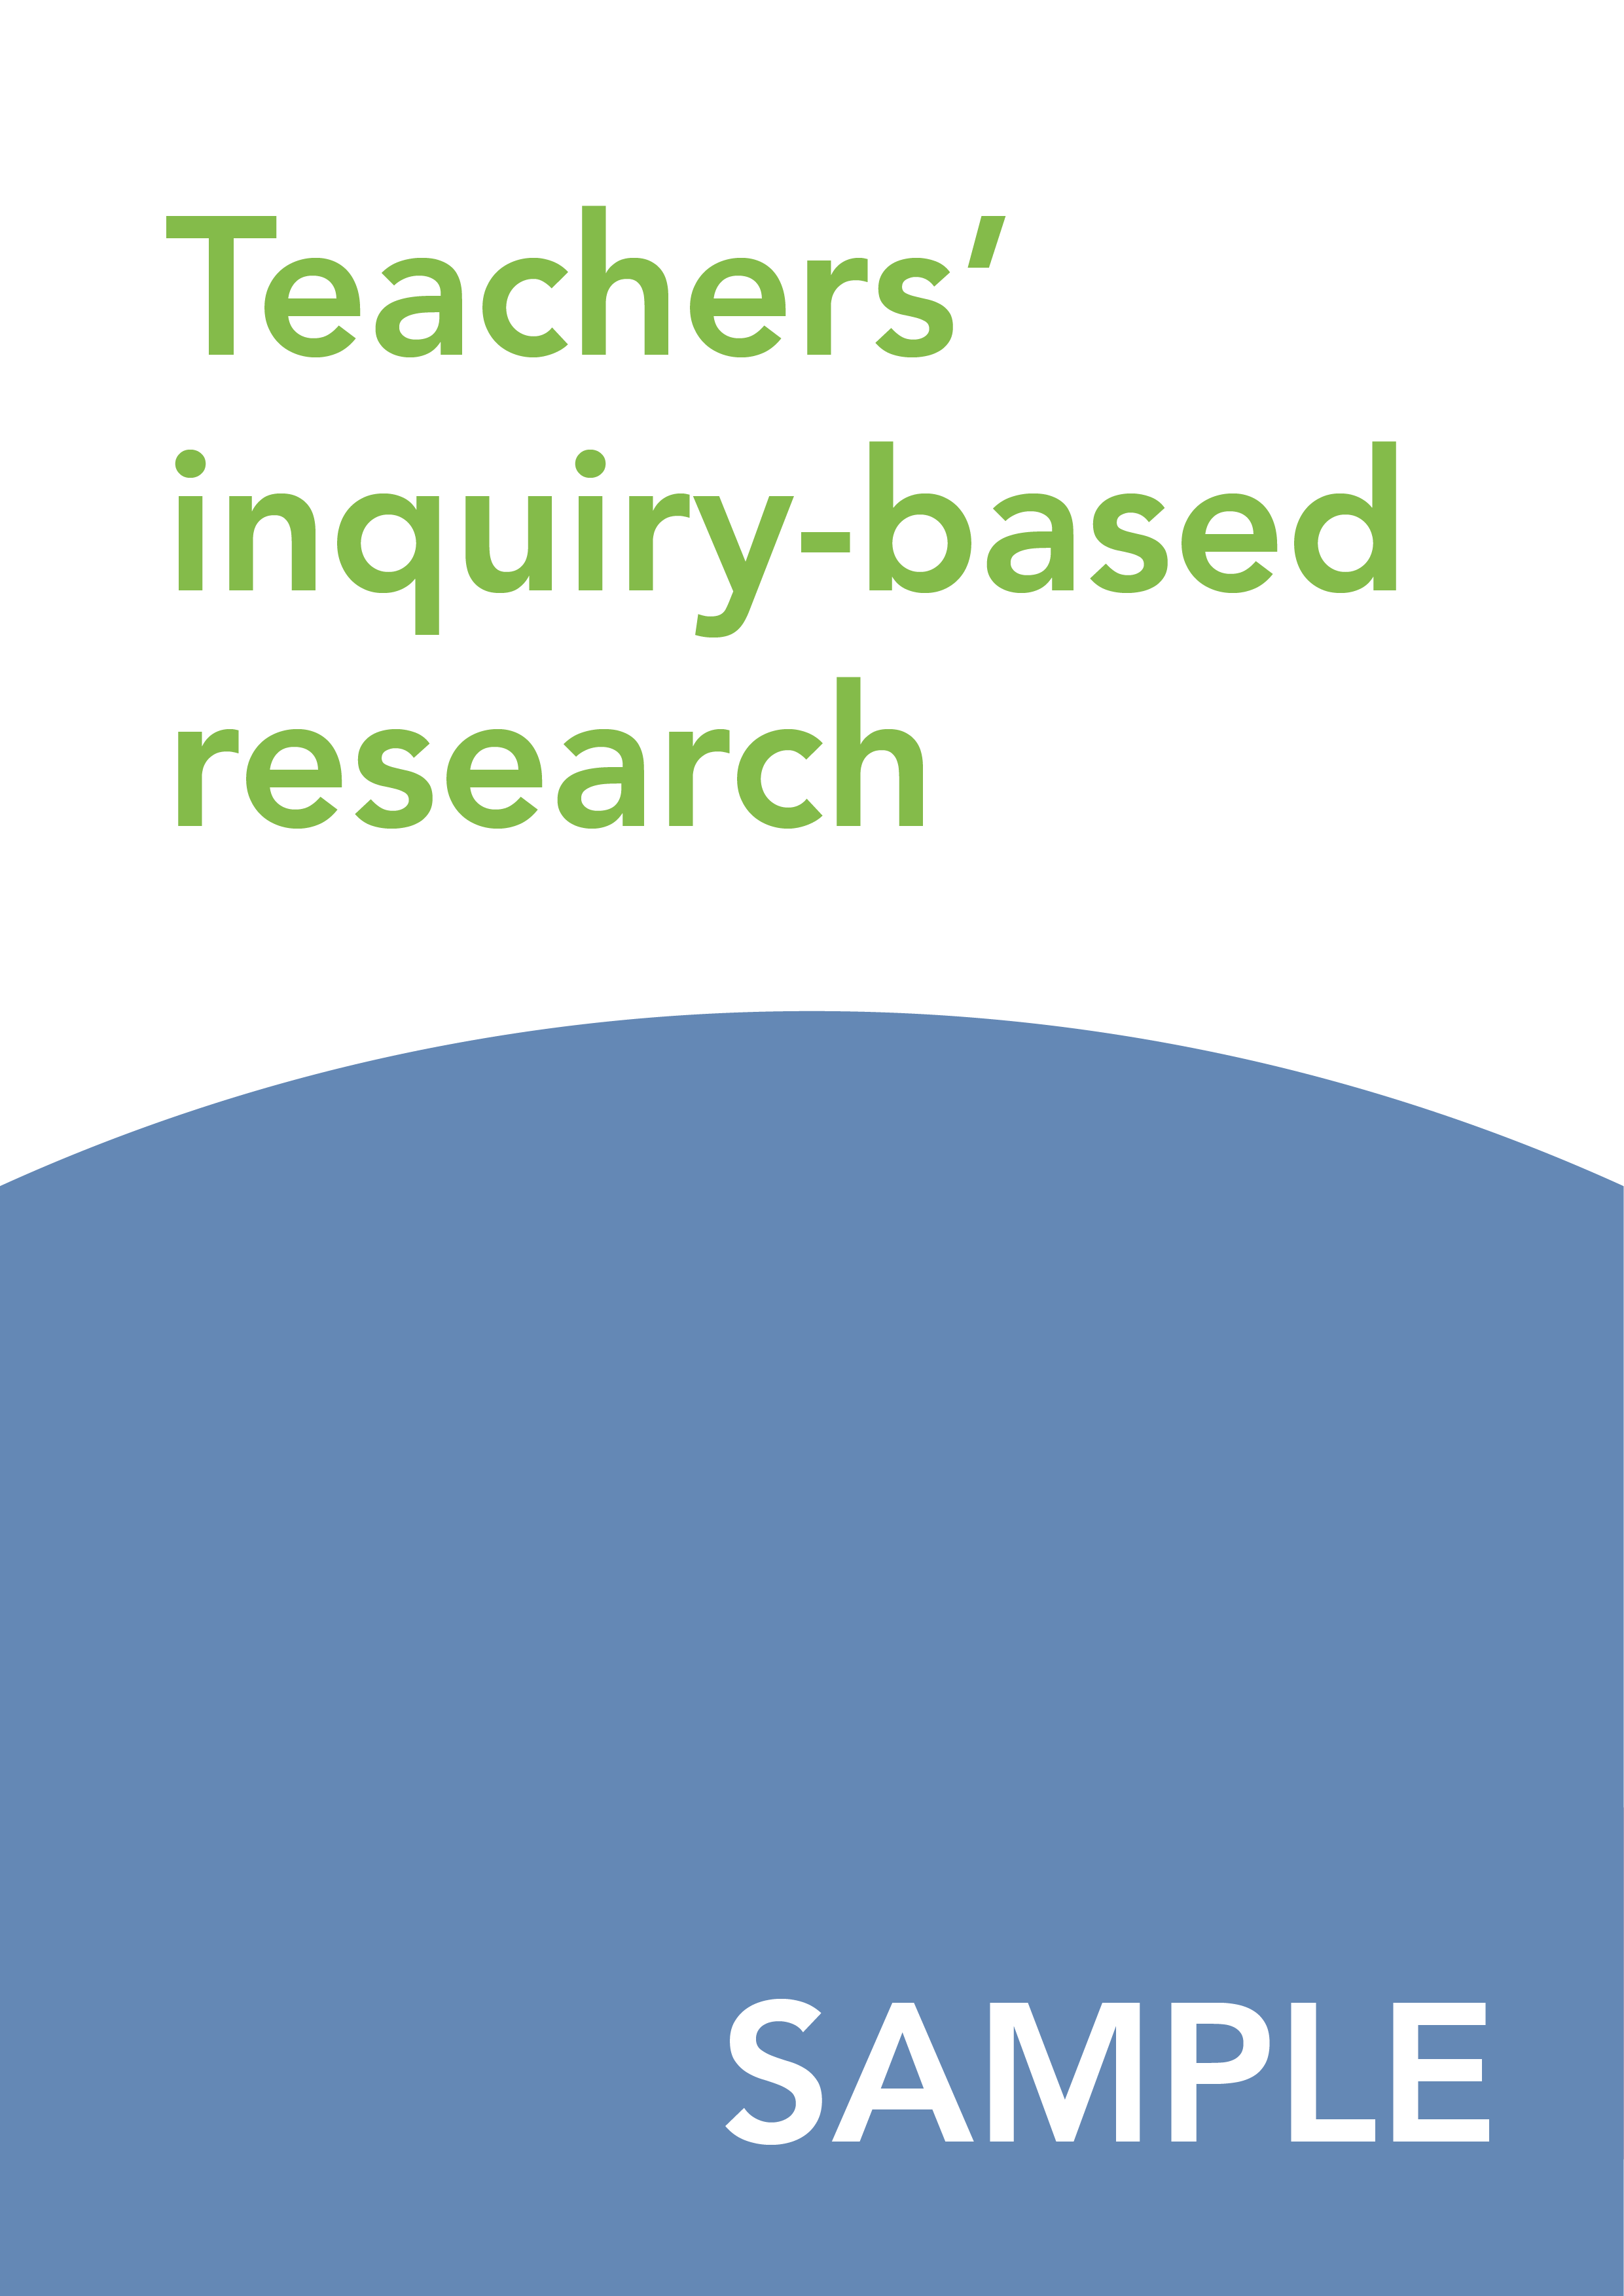 Teachers' inquiry-based research